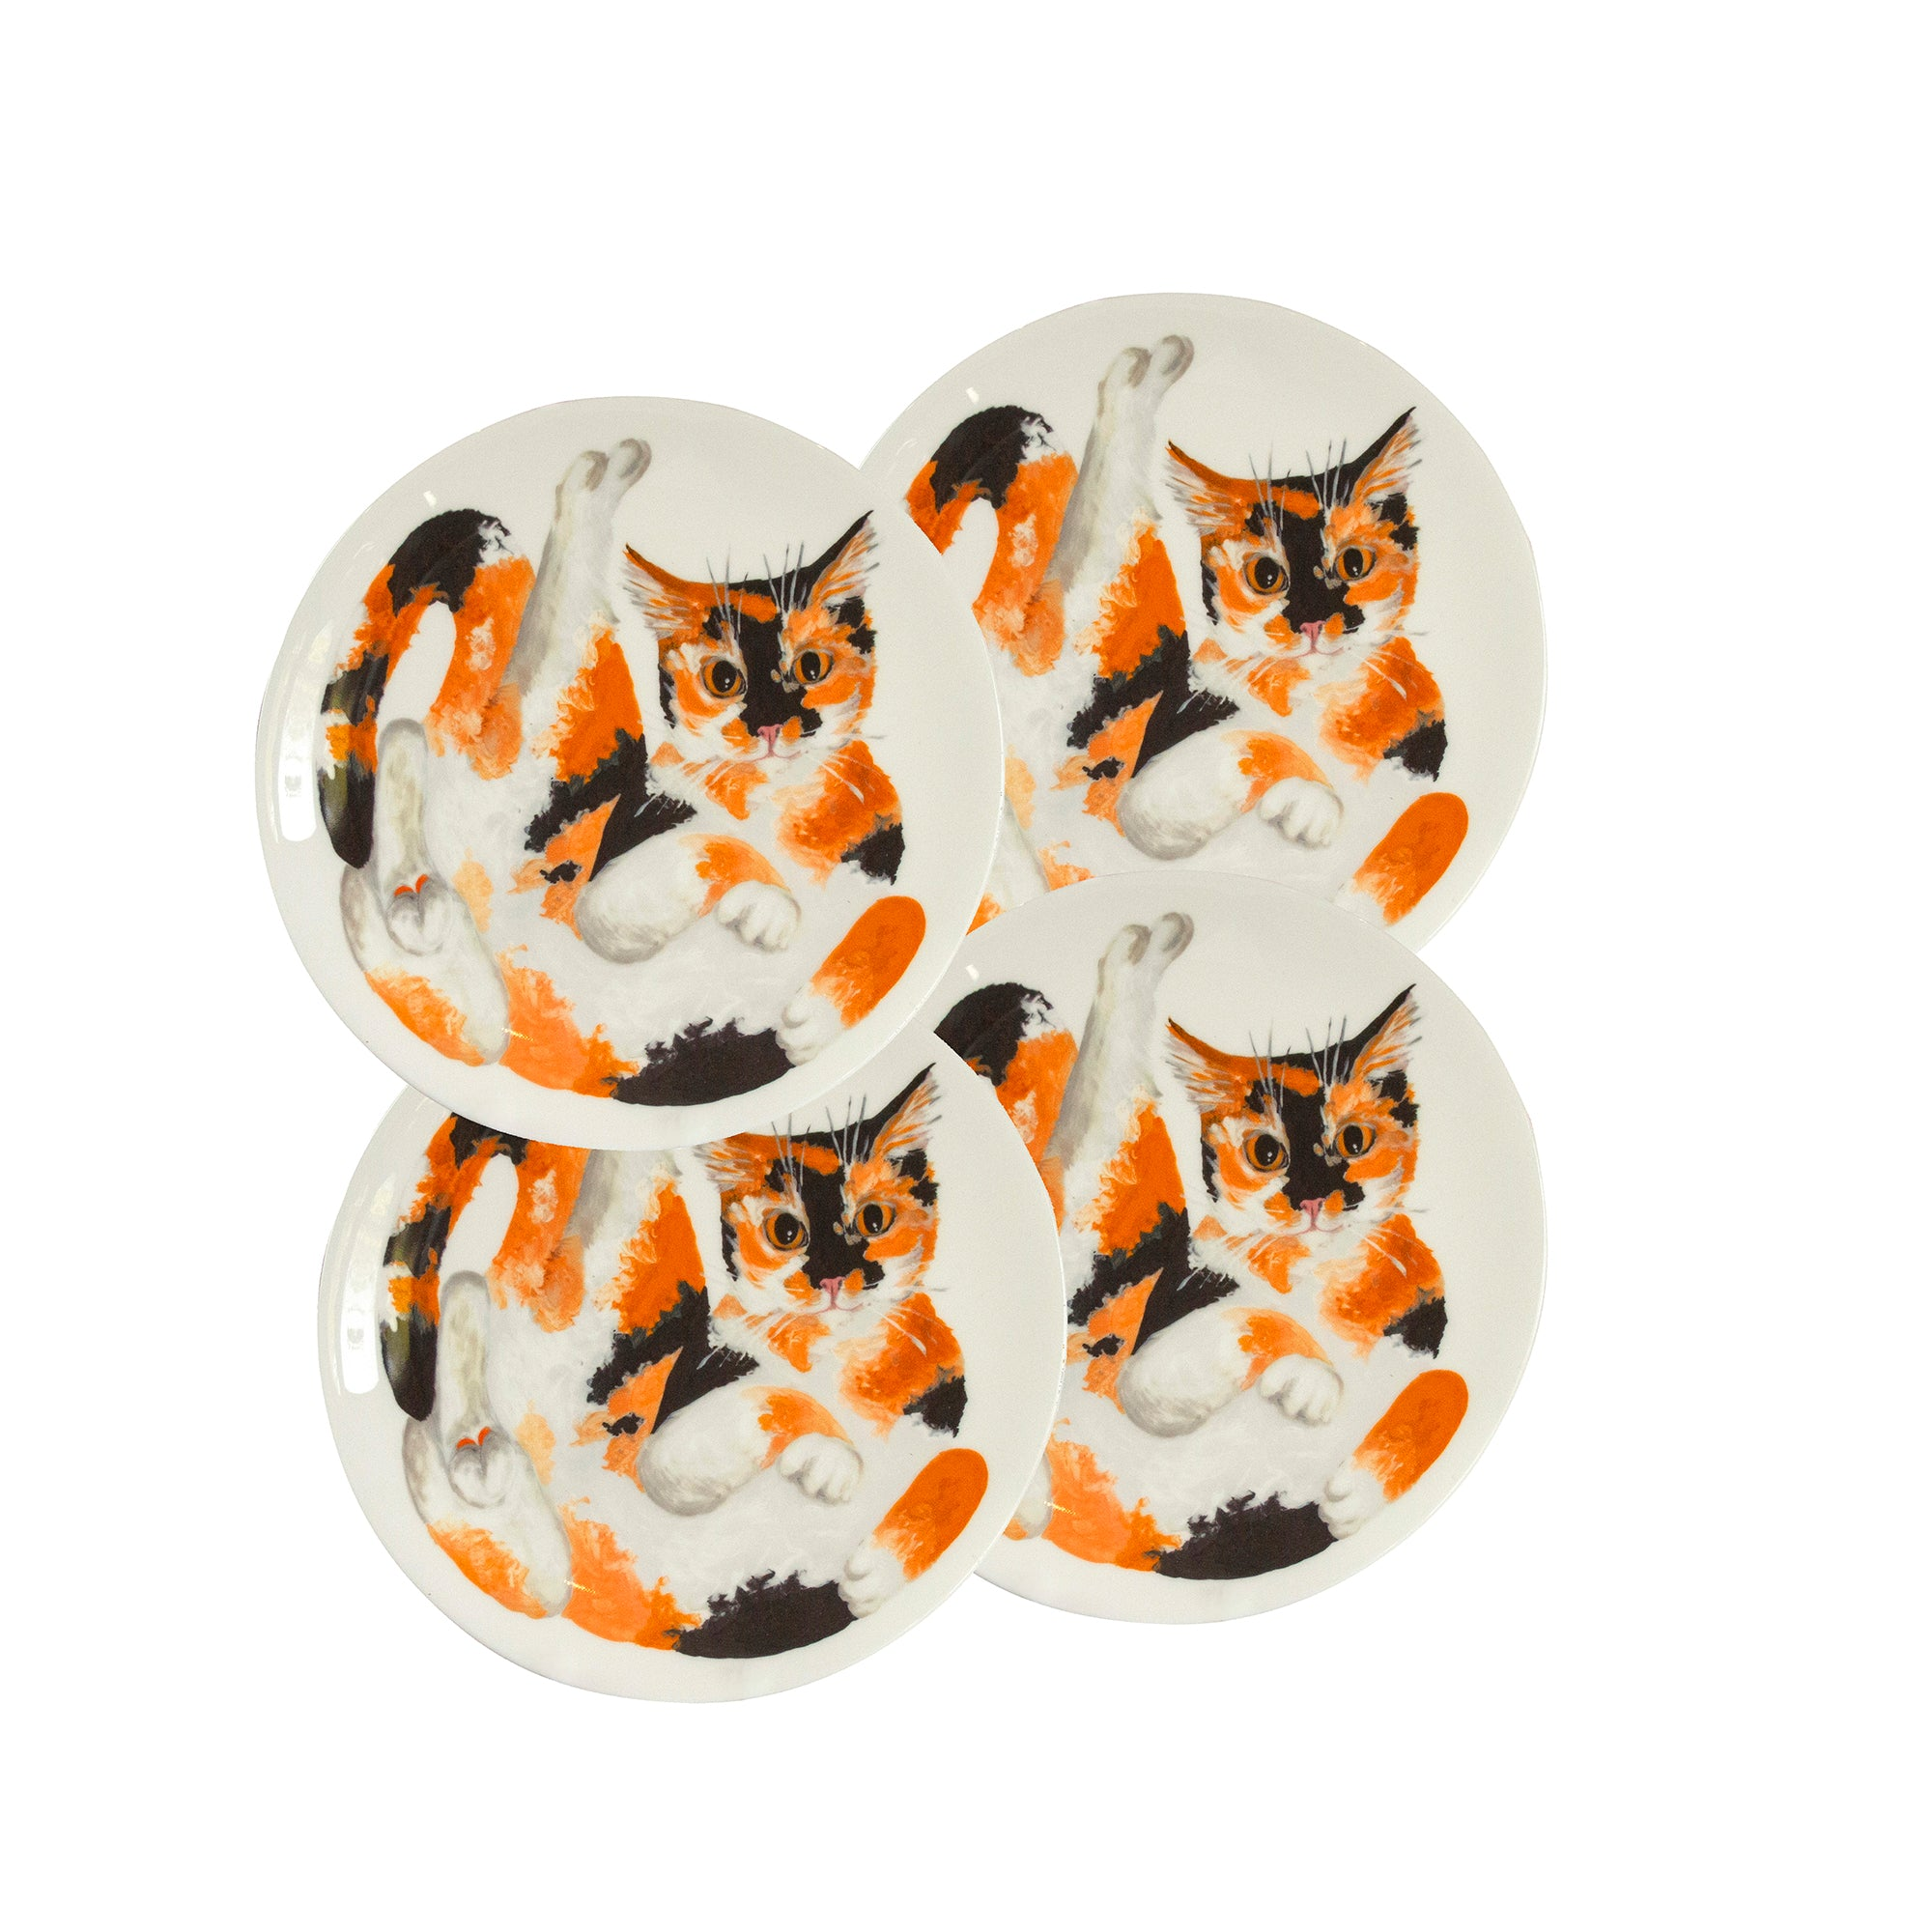 A tortoiseshell cat printed on 4 white plates. Catnap Design London.